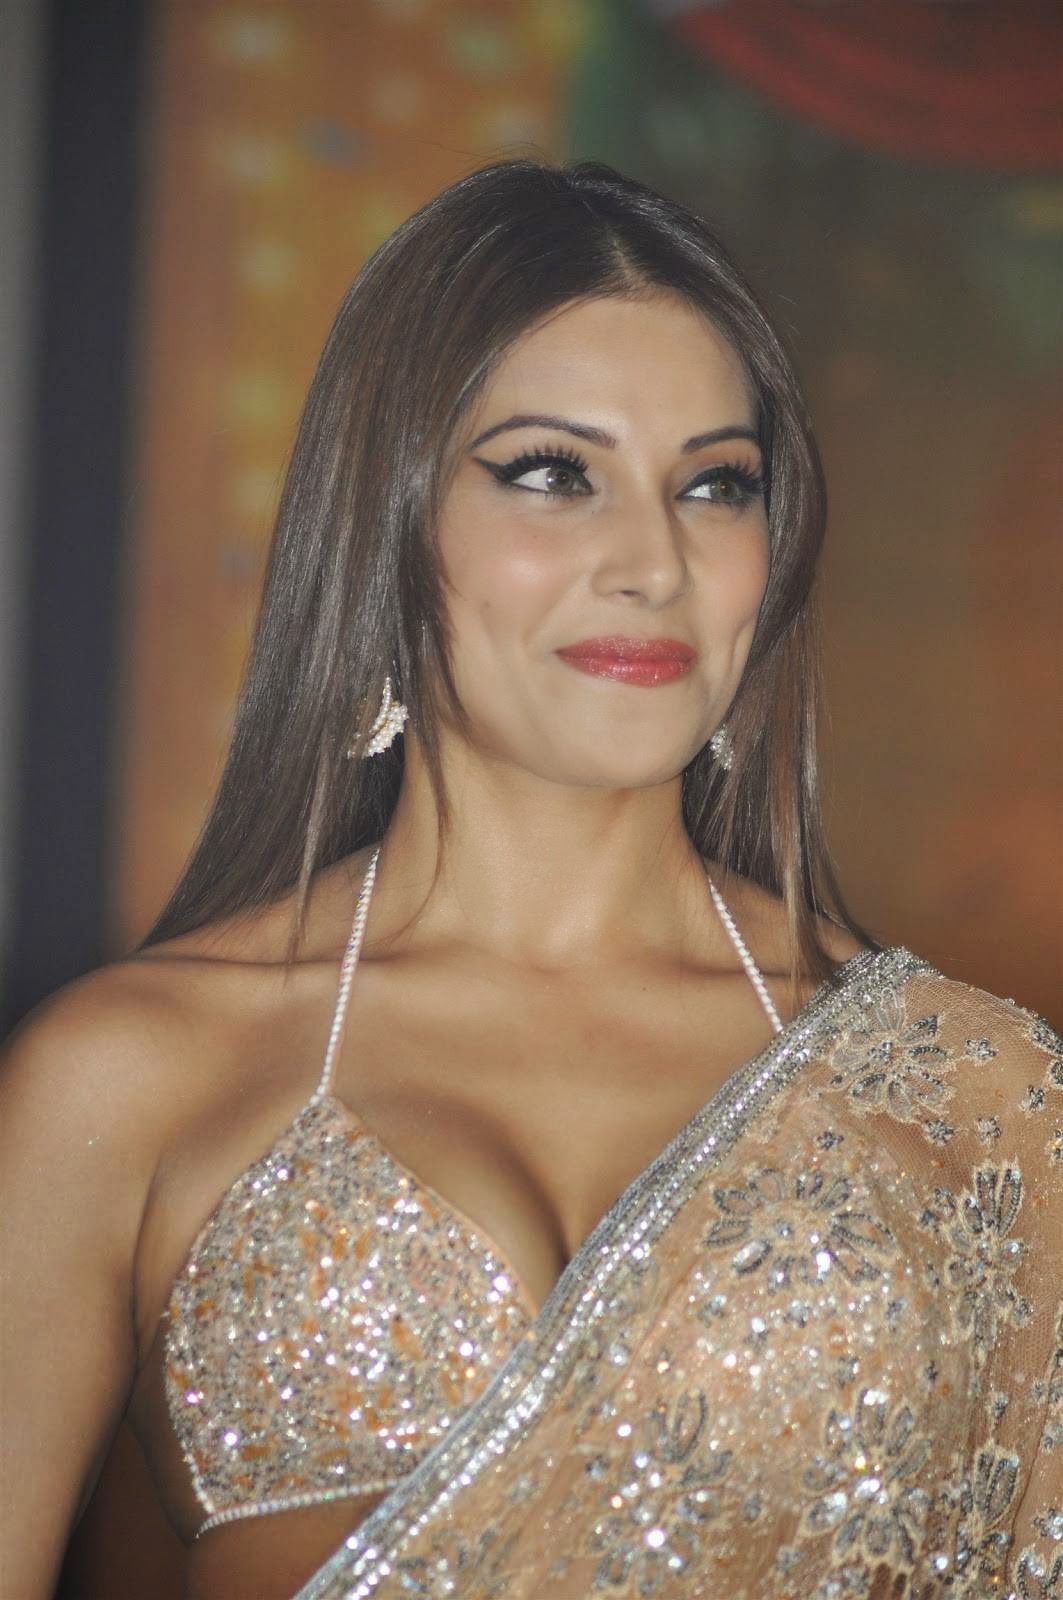 Bipasha Basu In Dancing Saree Photos Bipasha Basuunseen Hot Saree Photos Indian Actress Bipasha Basu Latest Stills Bipasha Basu Latest Saree Photos